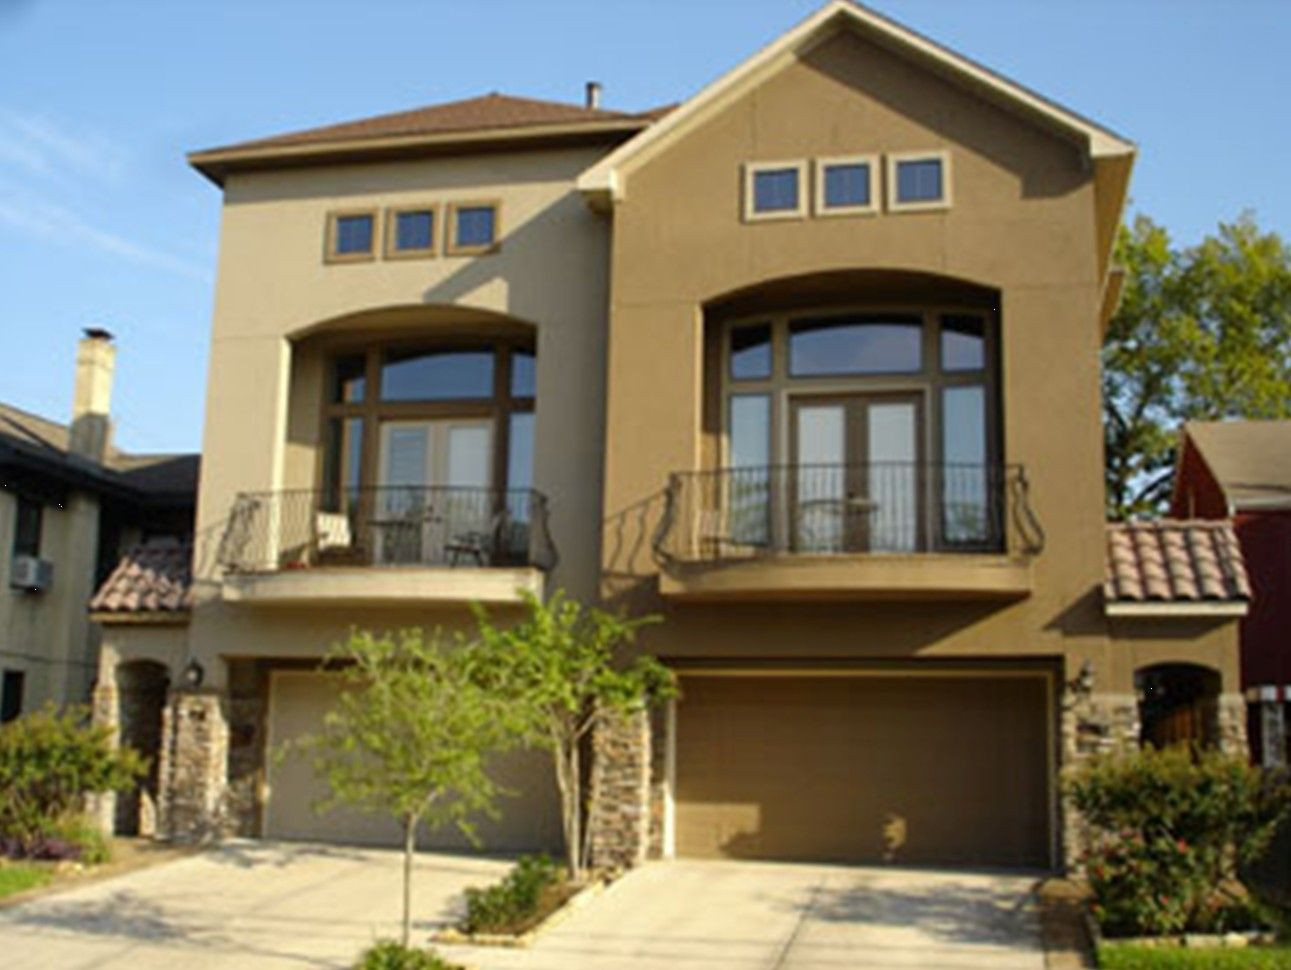 Exterior paint schemes stucco - Exterior Paint Schemes With Stucco And Stone Stucco Is A